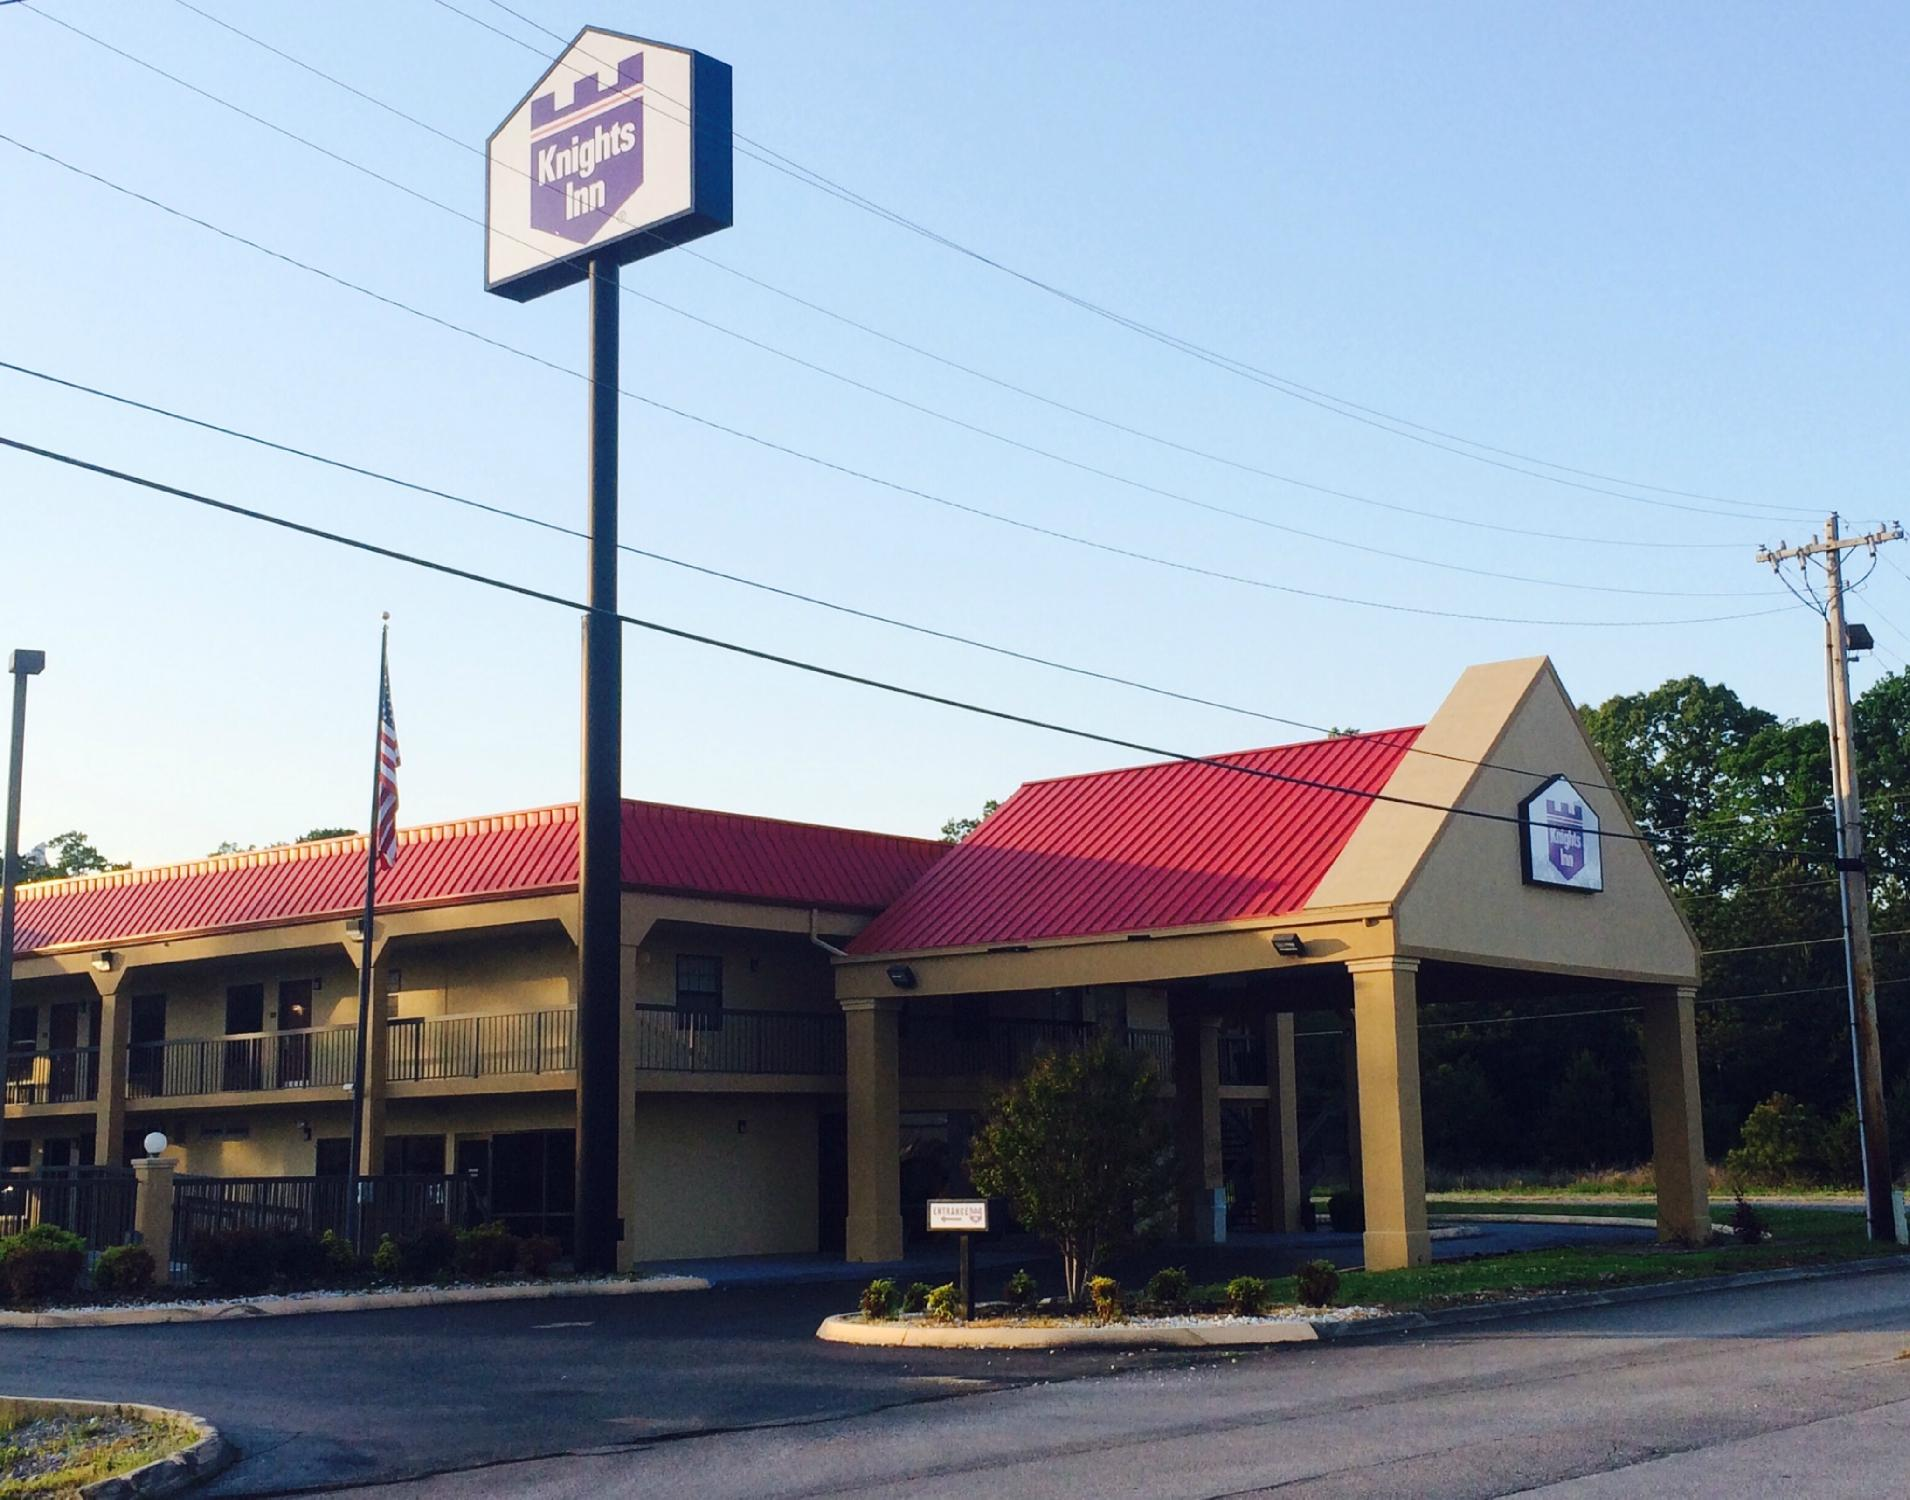 Knights Inn Knoxville/Lenoir City